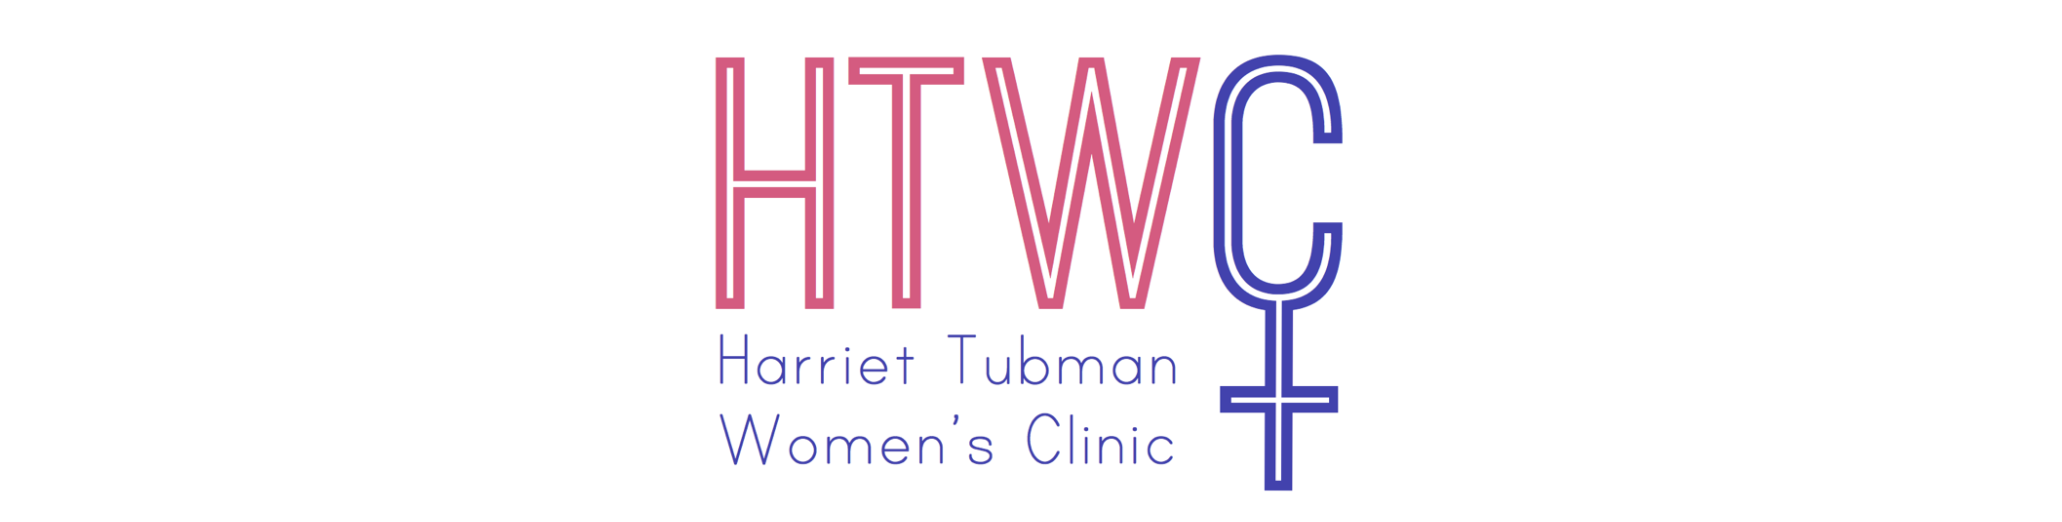 Harriet Tubman Women's Clinic